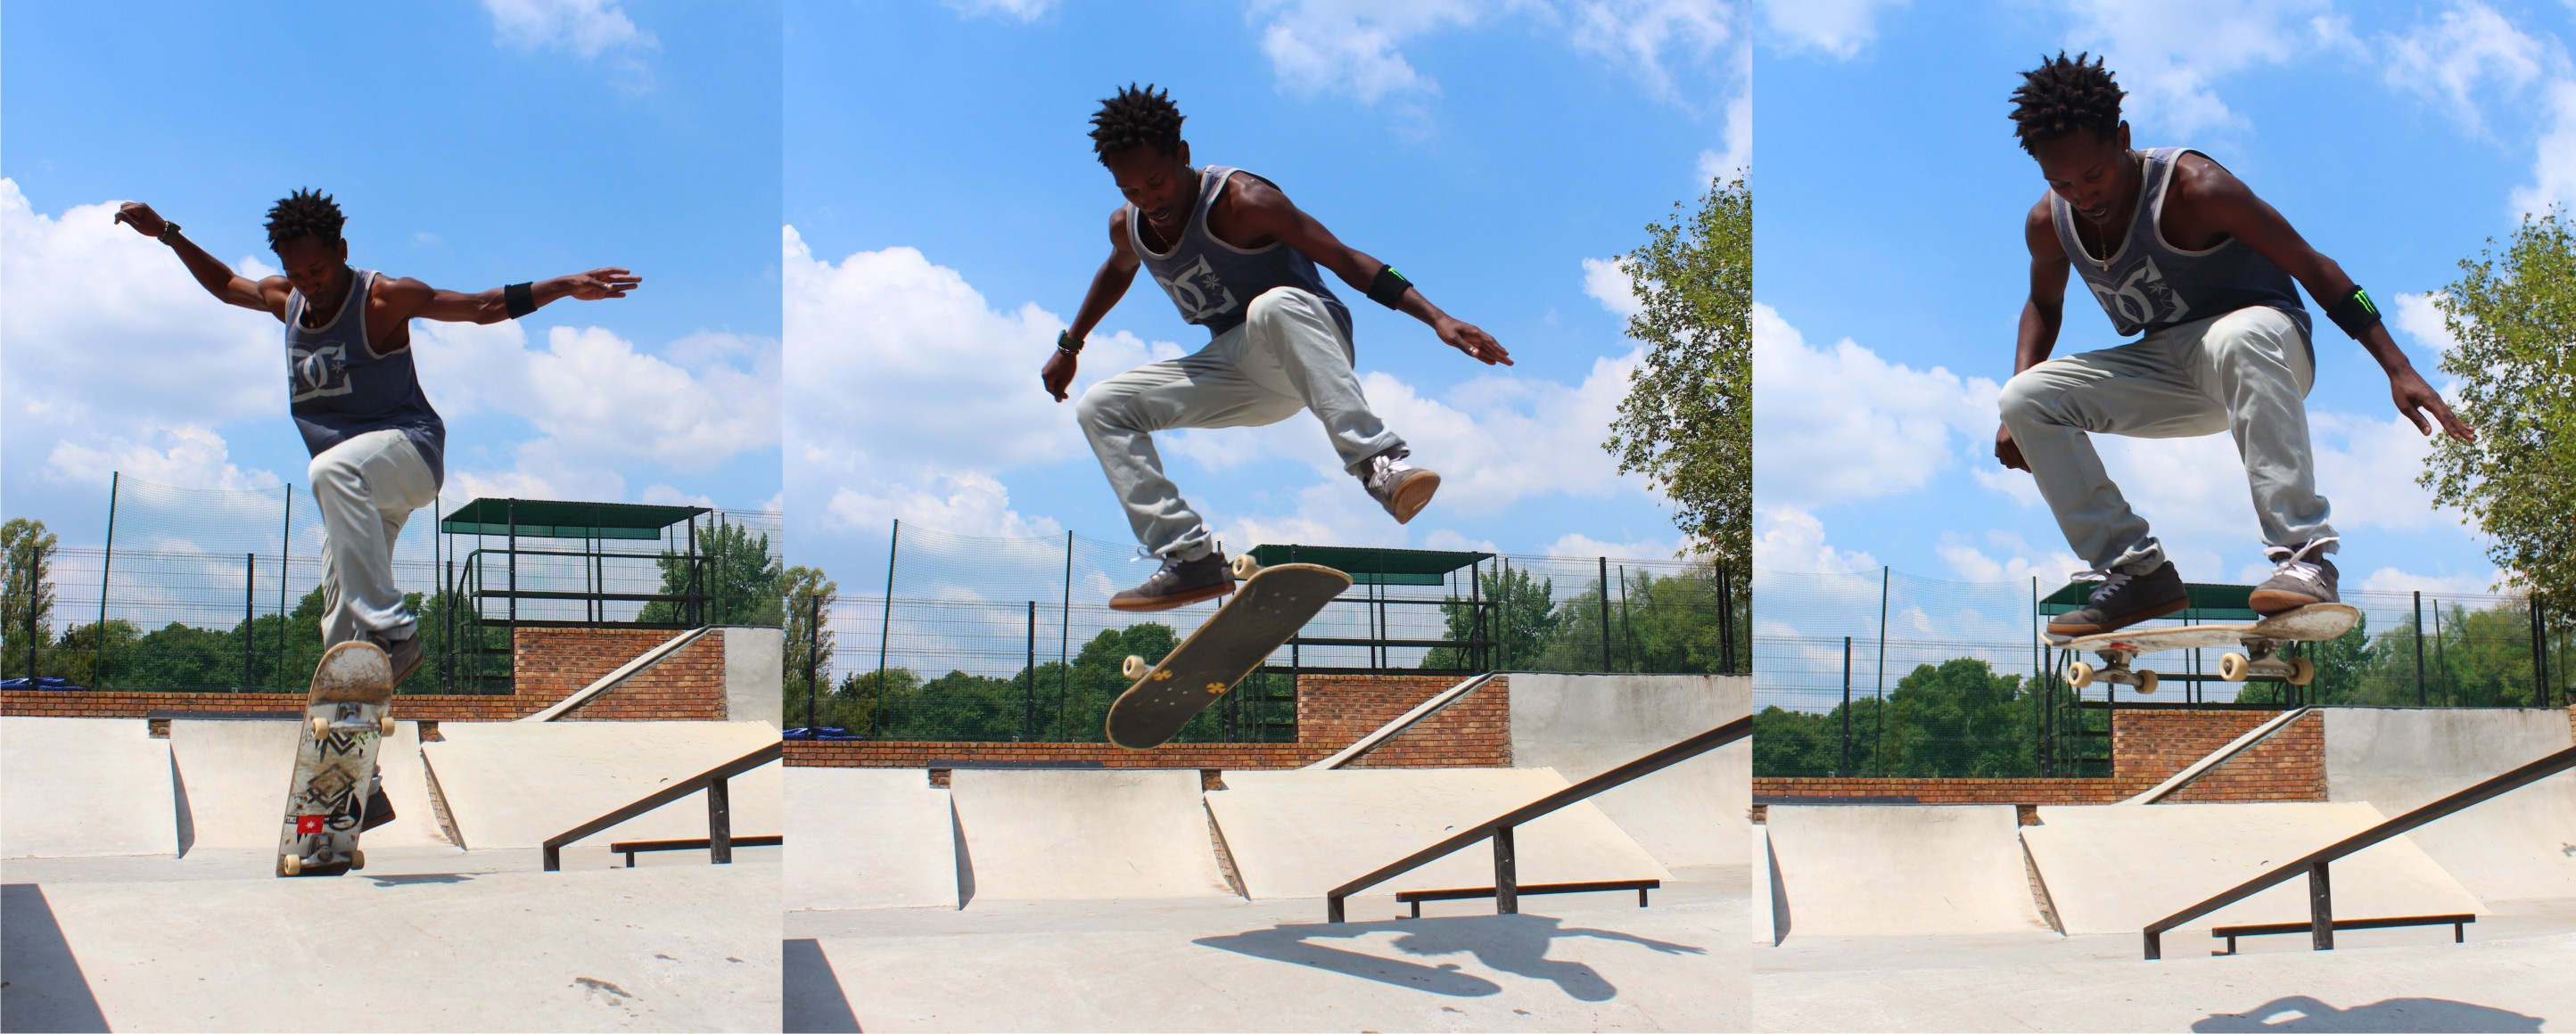 Khule Ngubane skateboarding his way to big dreams